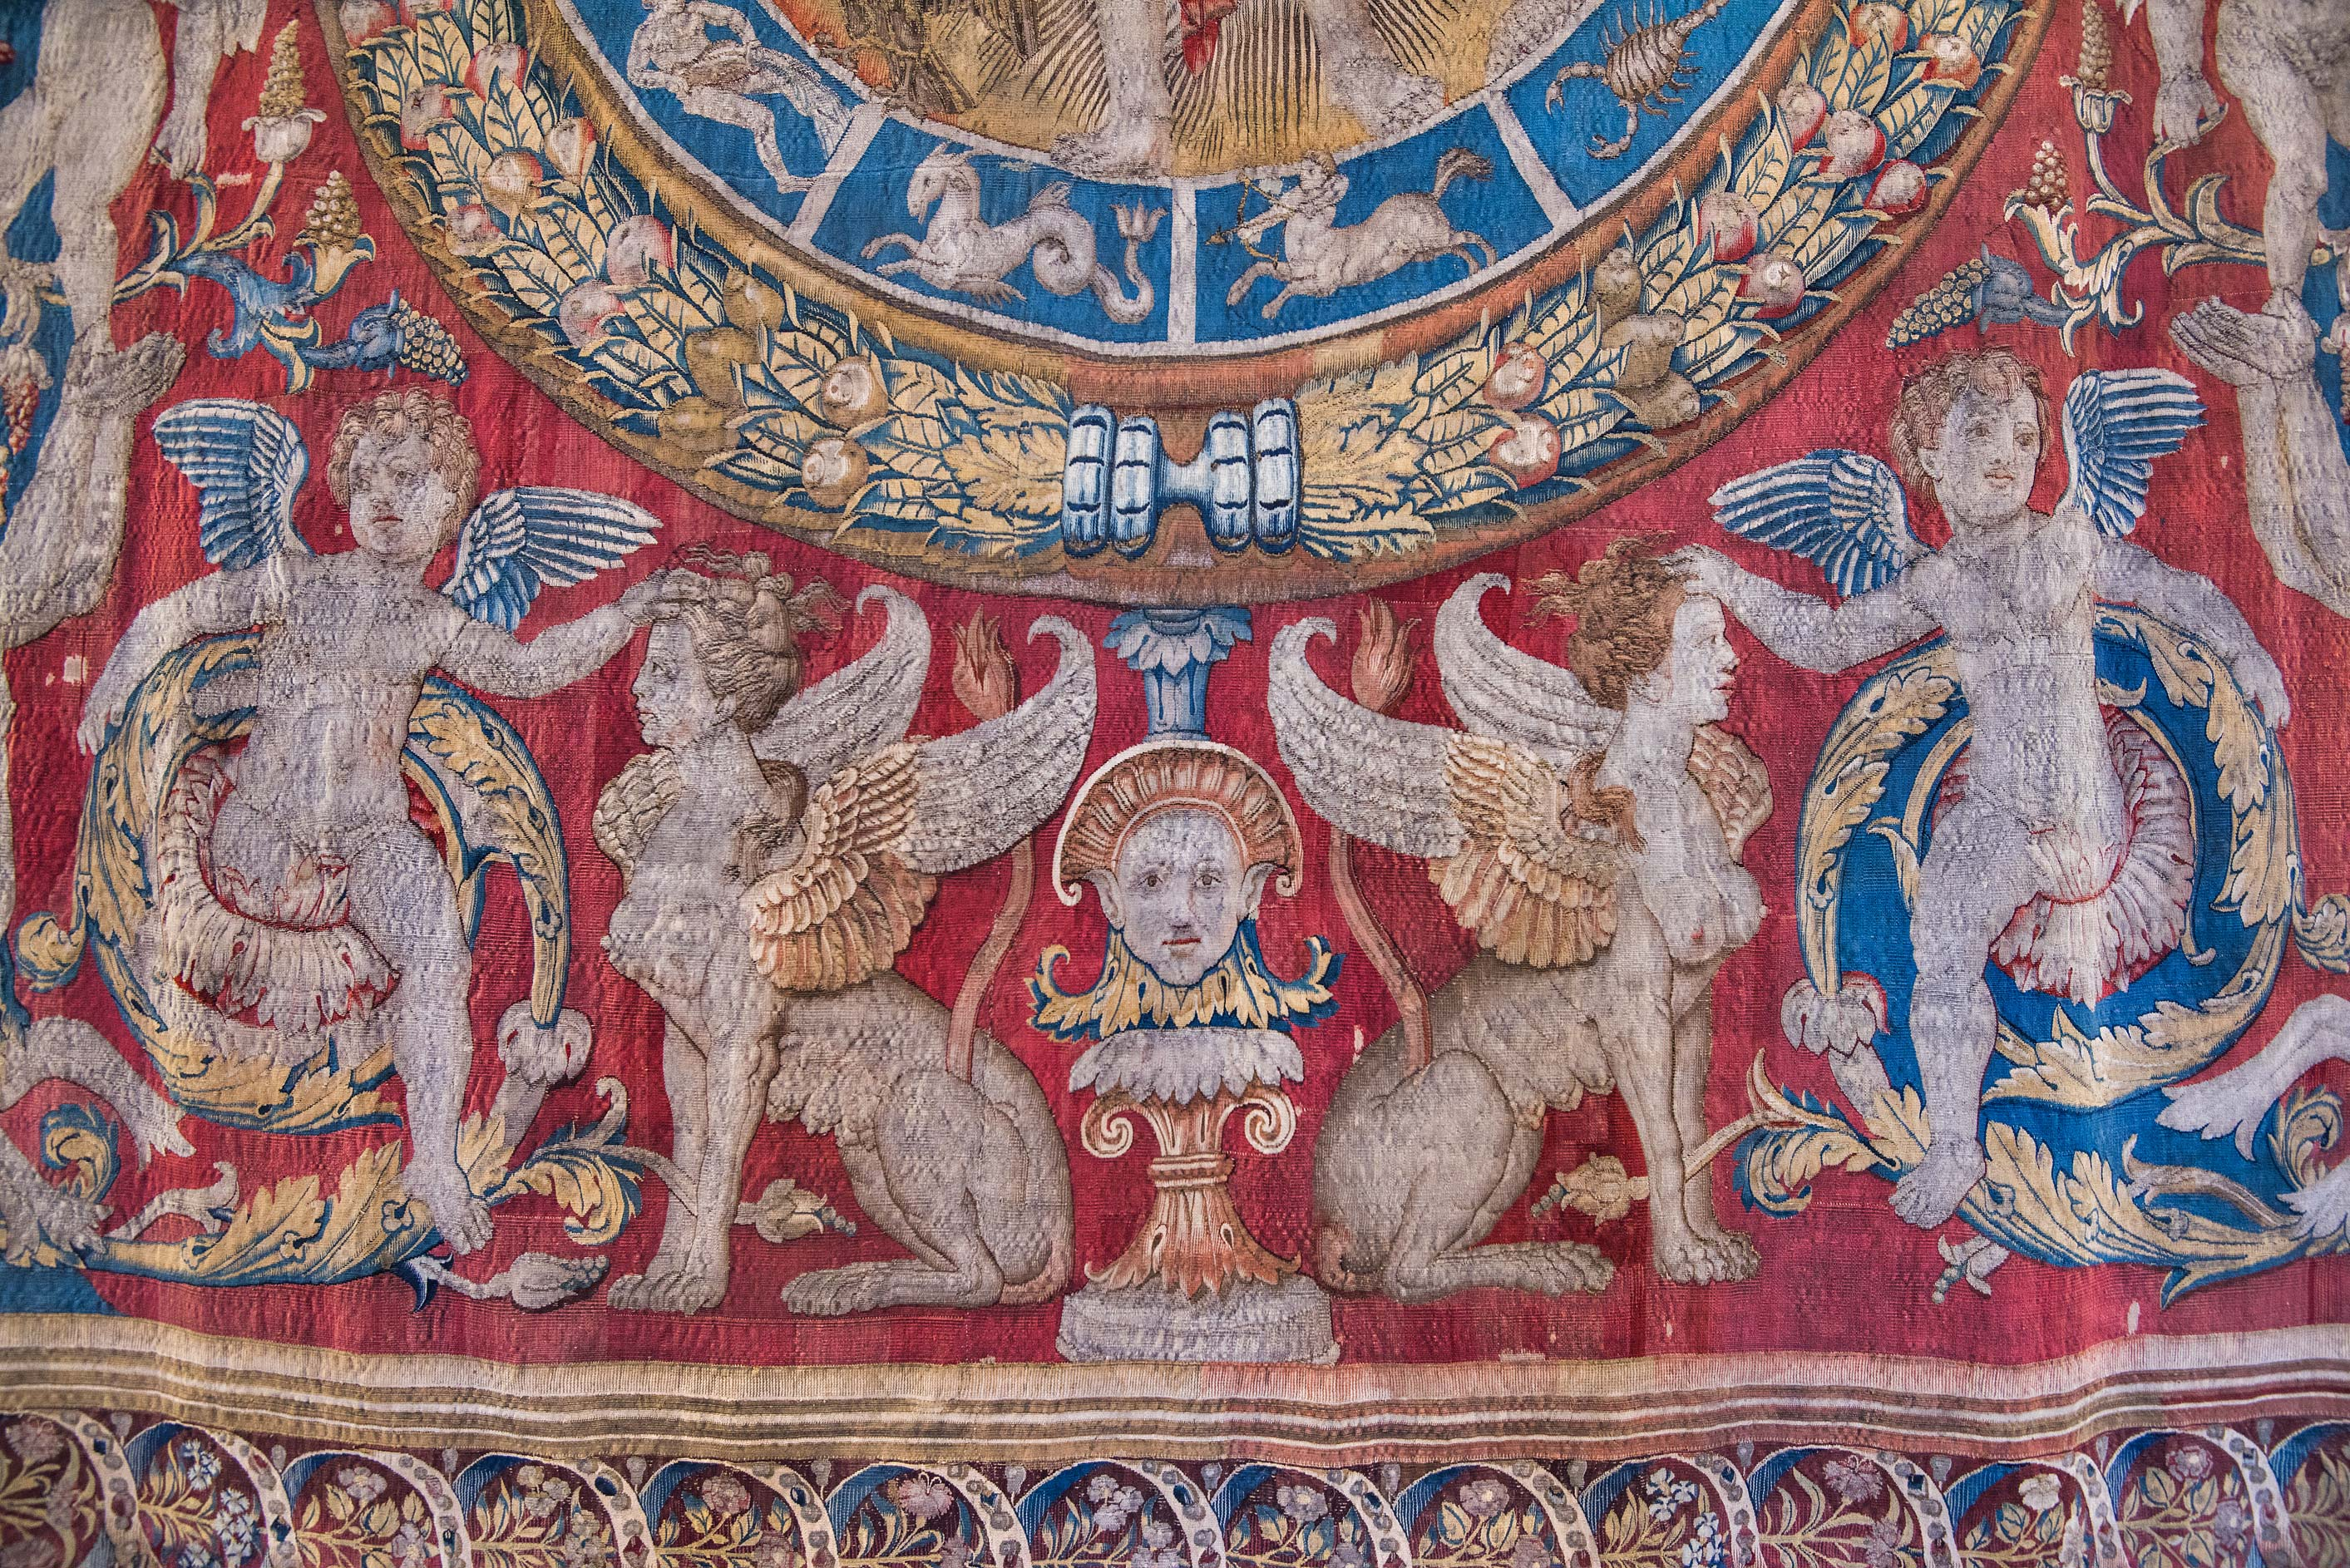 Winged figures on tapestry in Hermitage Museum. St.Petersburg, Russia